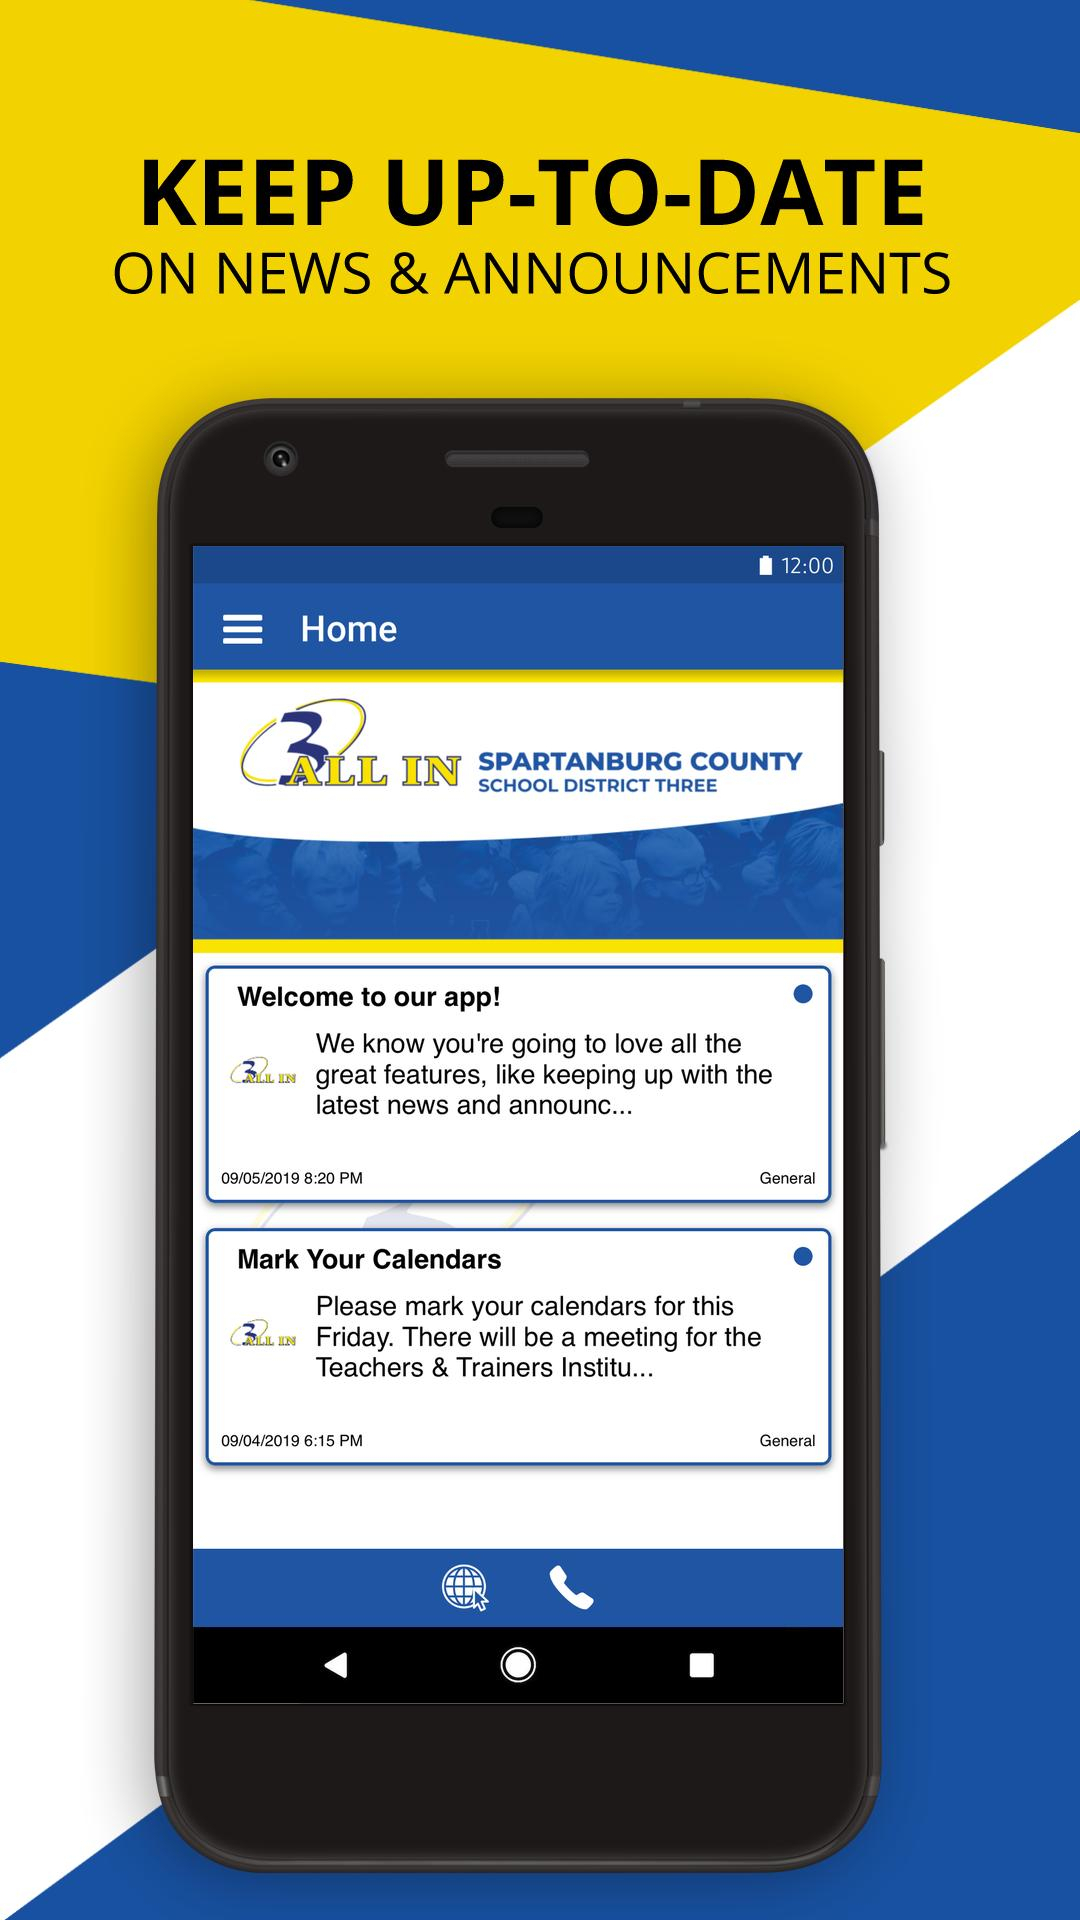 Spartanburg School District 3 For Android  Apk Download regarding Spartanburg School District 3 Calendar